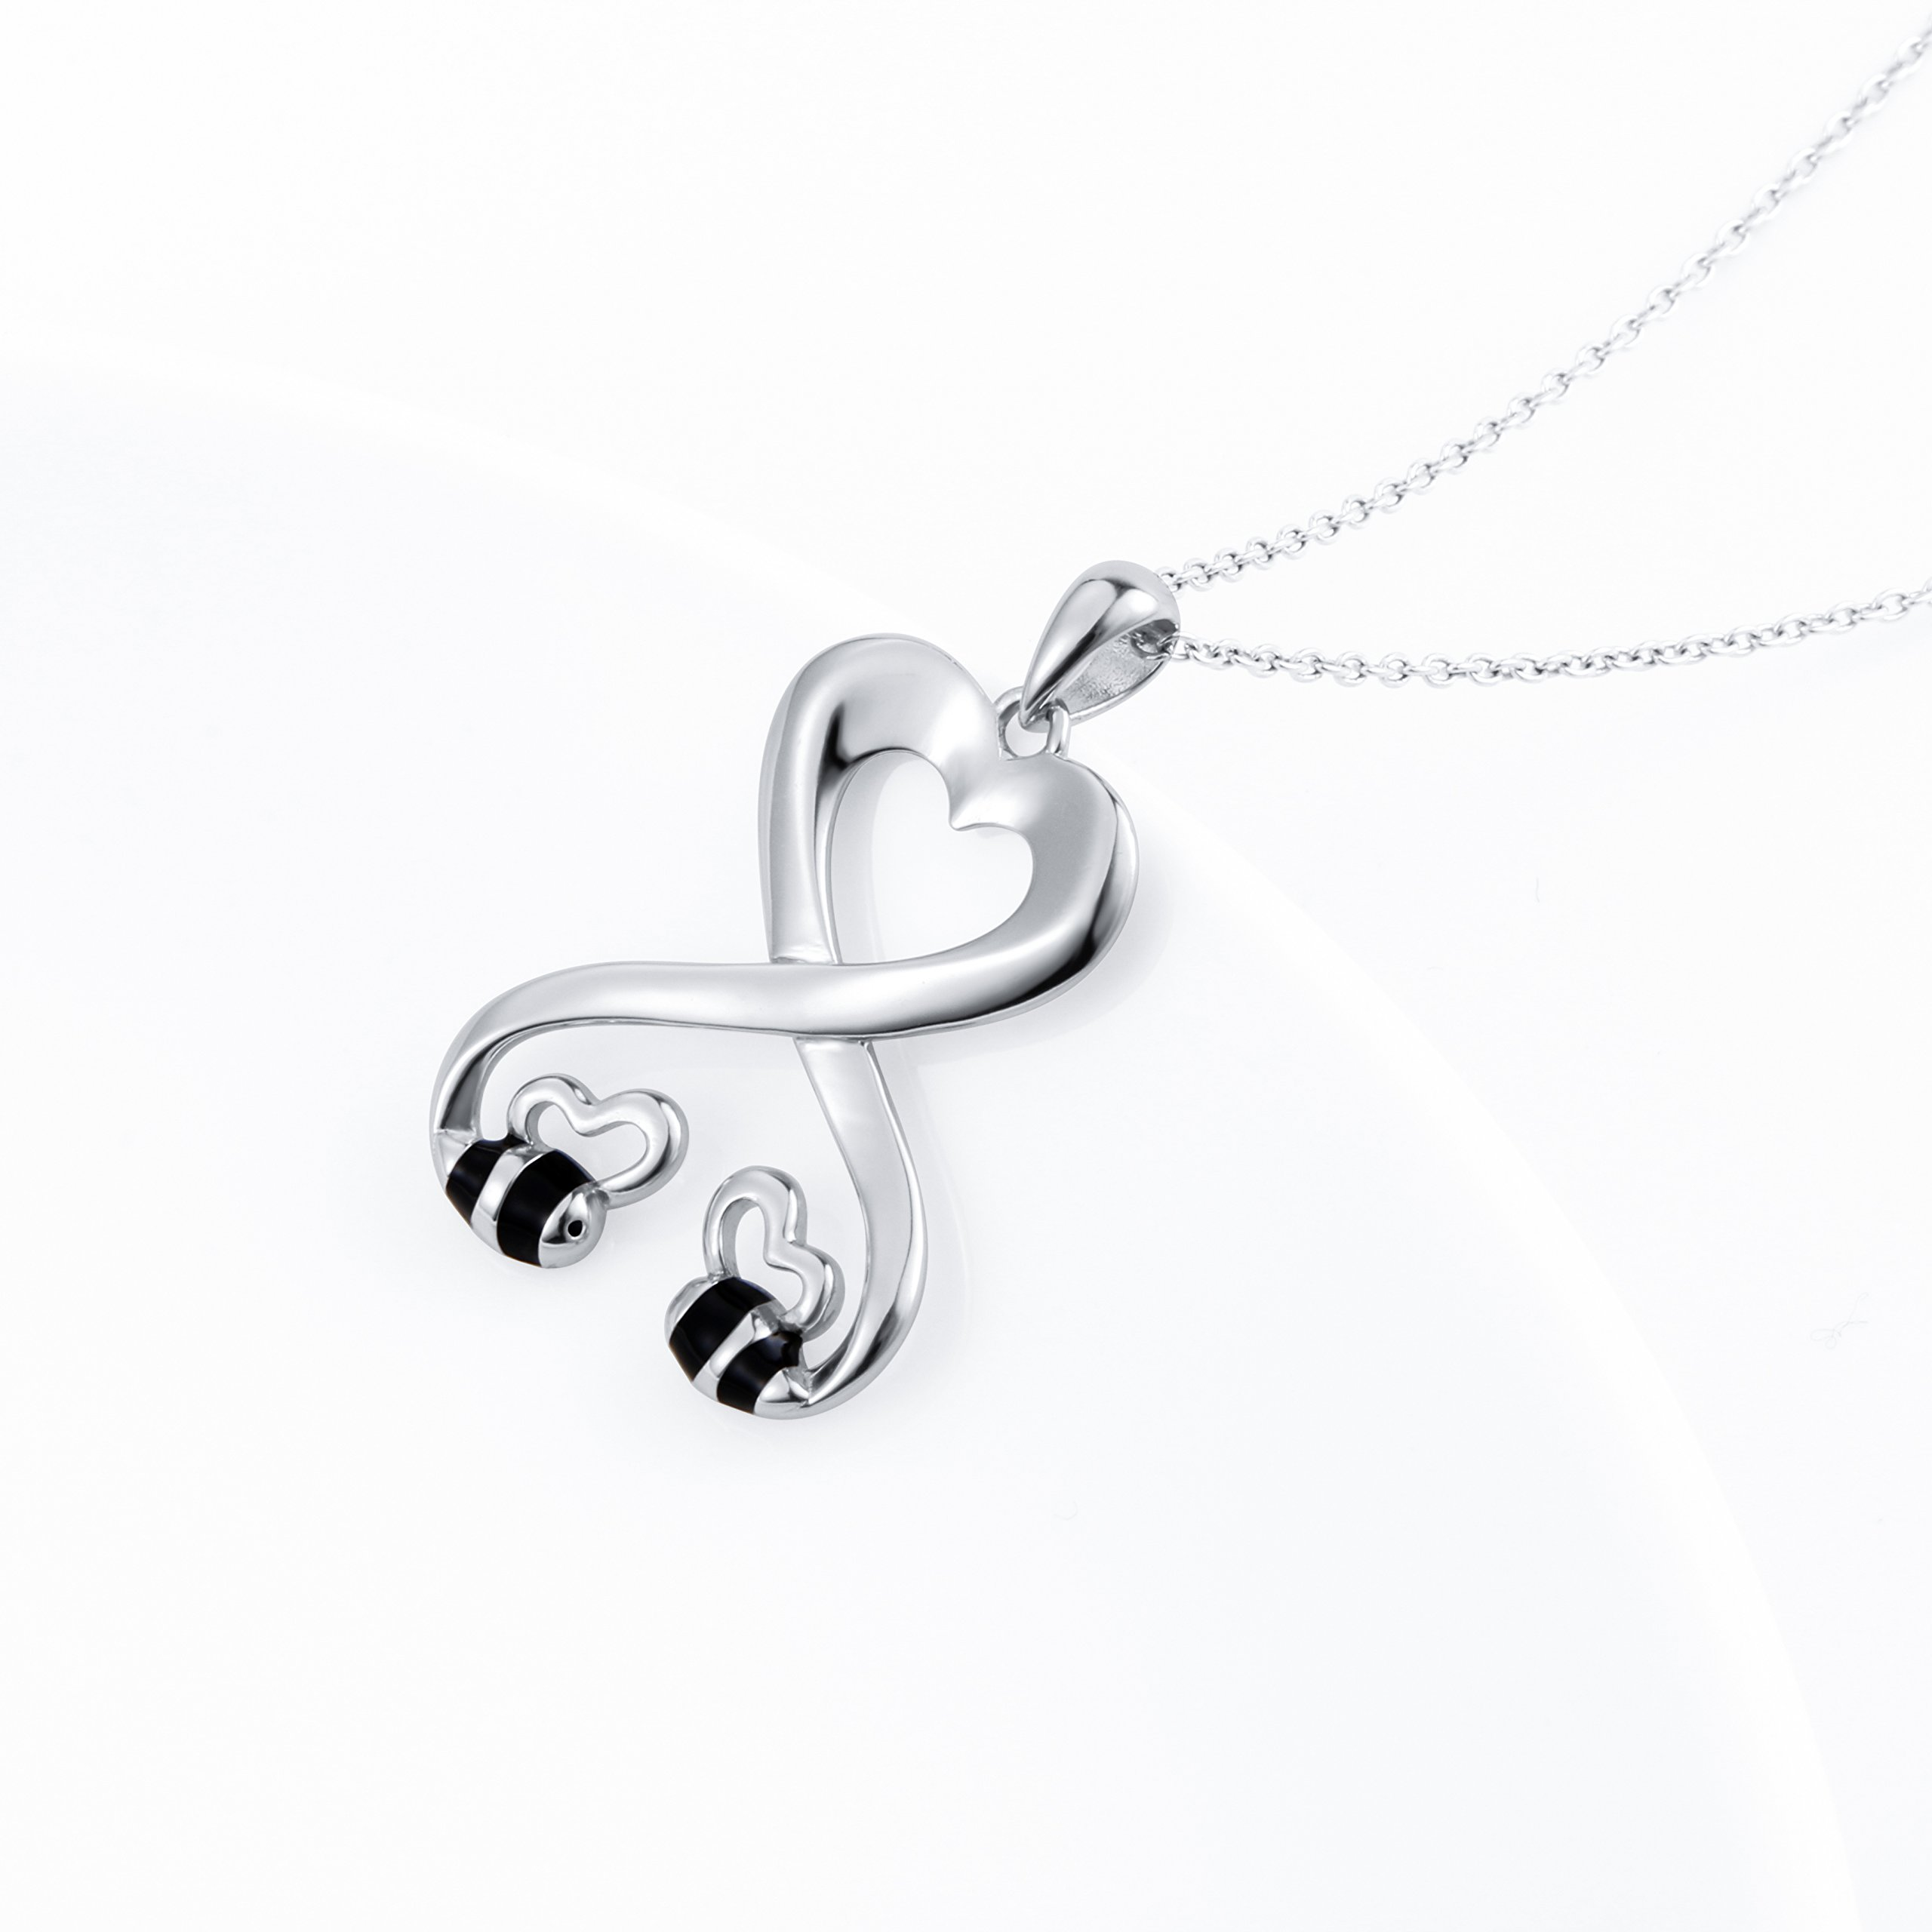 925 Sterling Silver Double Bees Infinity Love Heart Pendant Necklace for Girlfriend, 18'' by SILVER MOUNTAIN (Image #2)